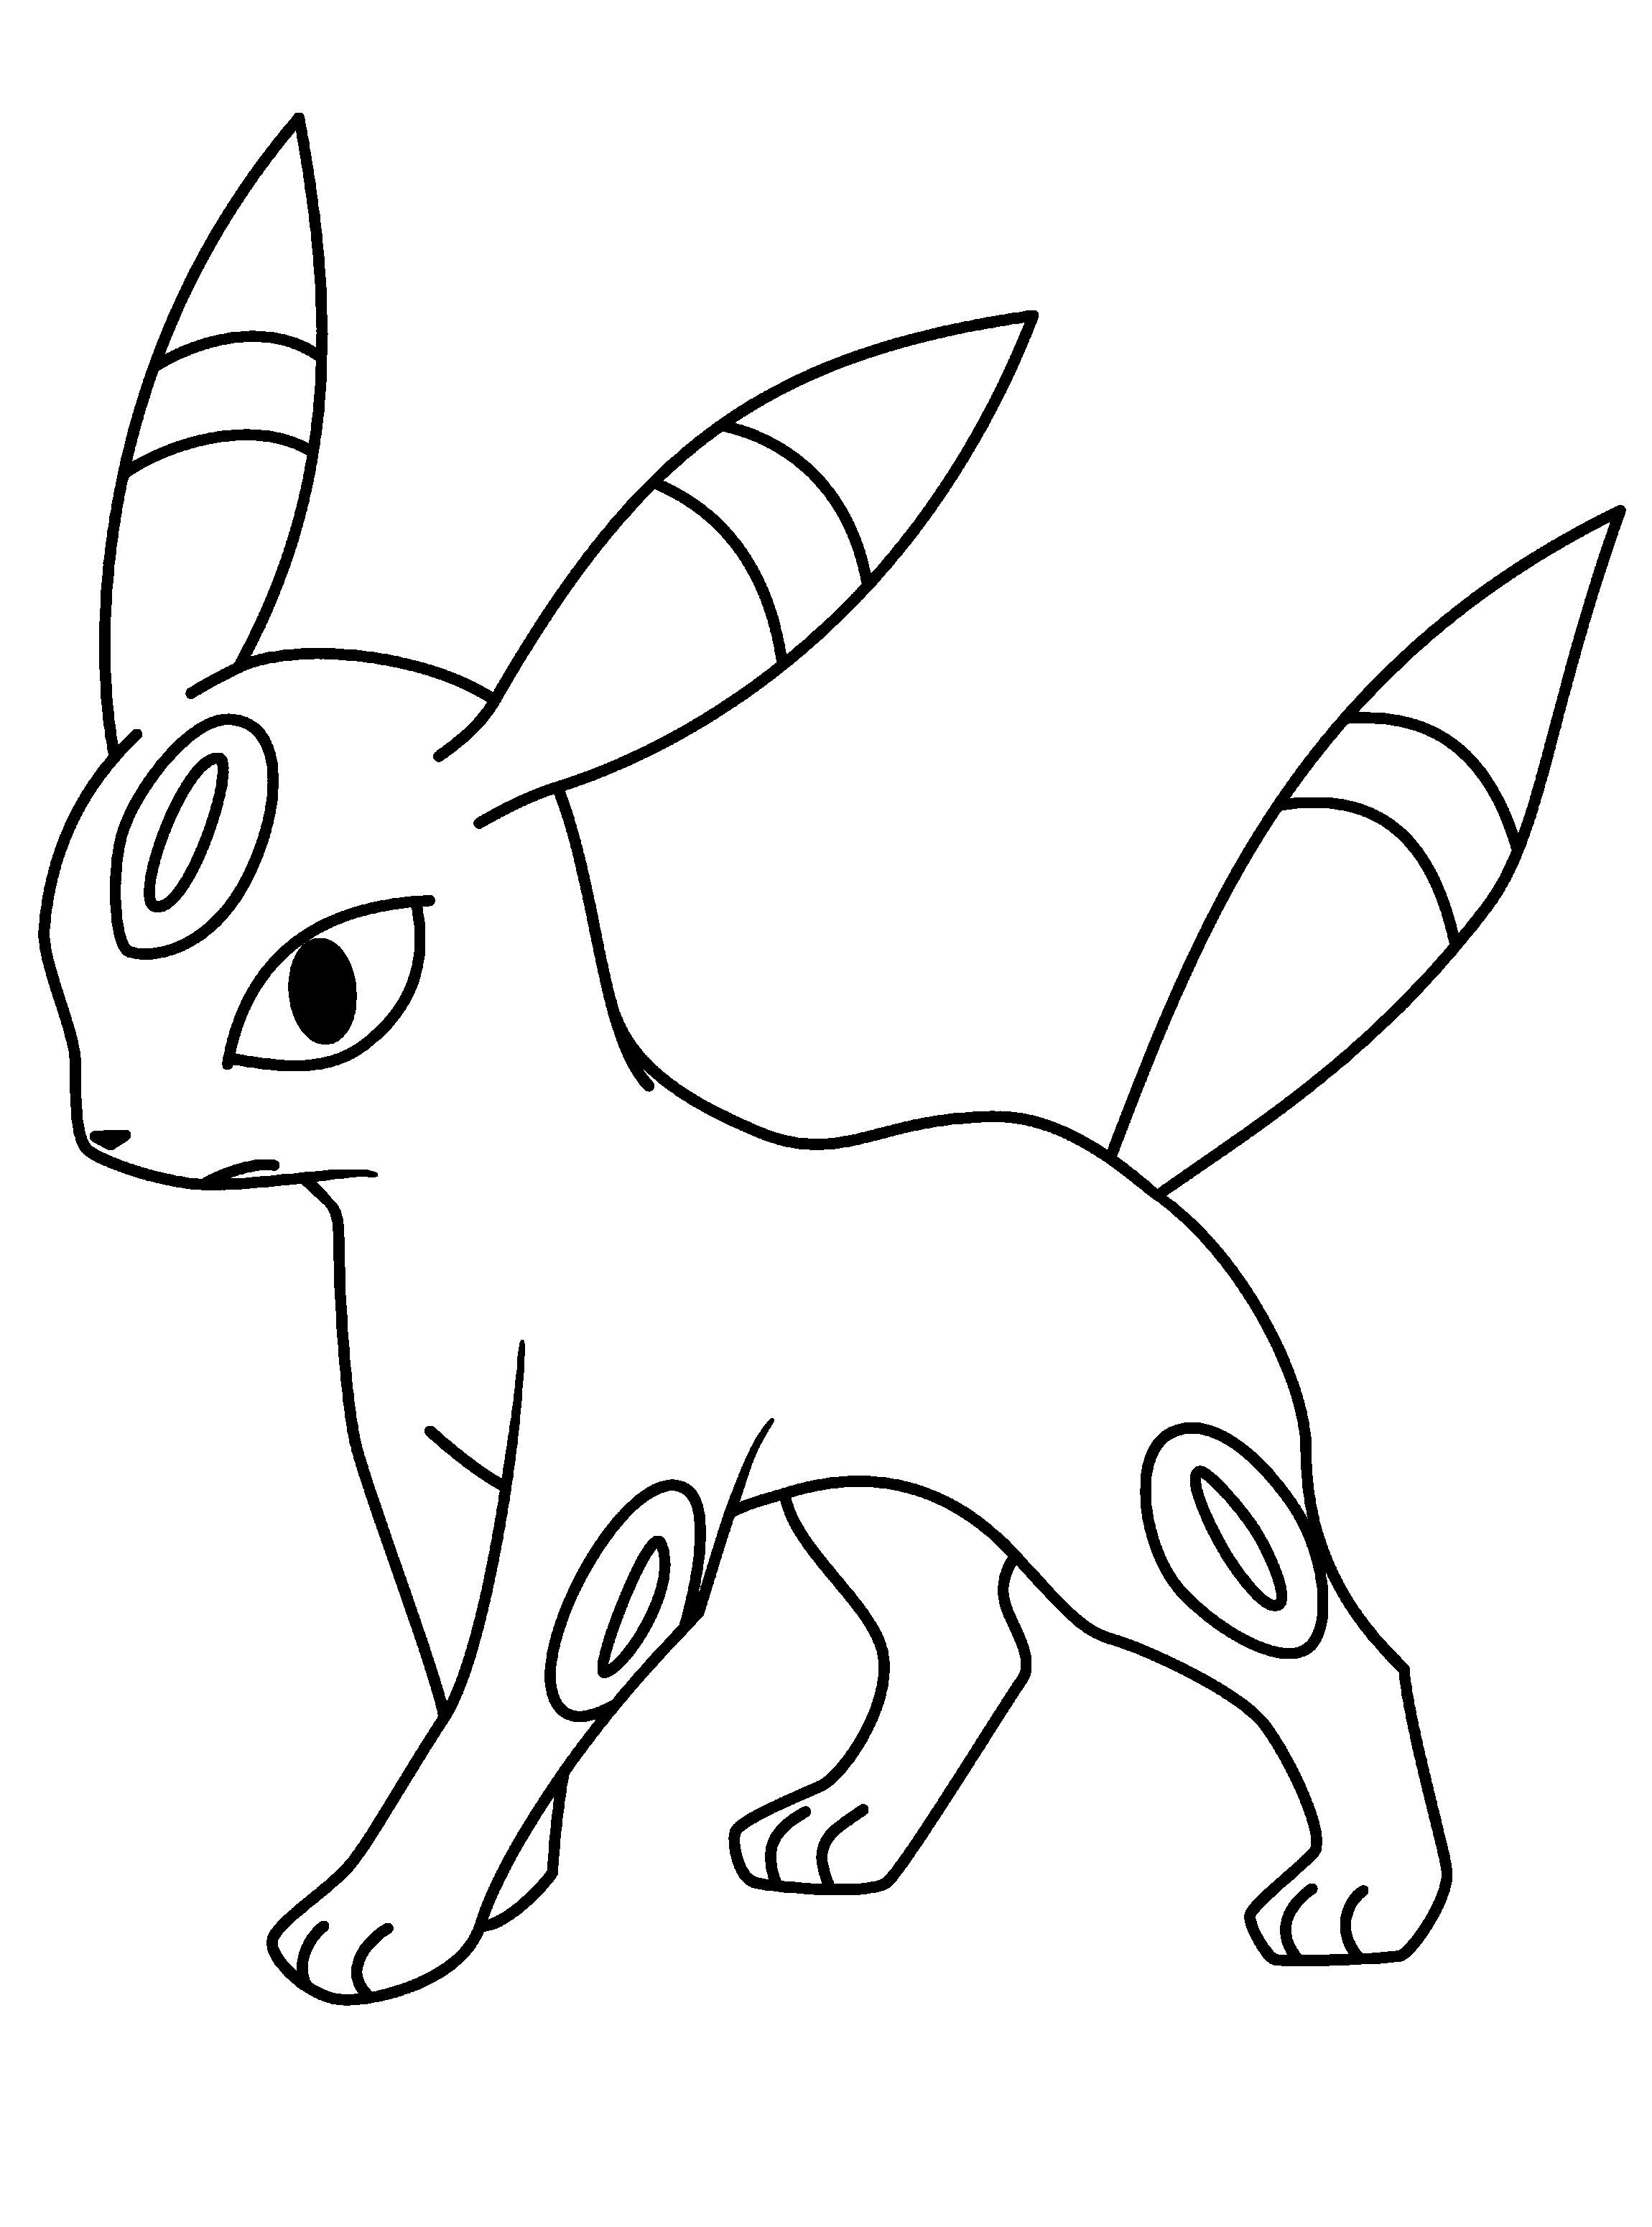 Printable Pokemon Coloring Pages Coloring Me Printables Coloring Pages